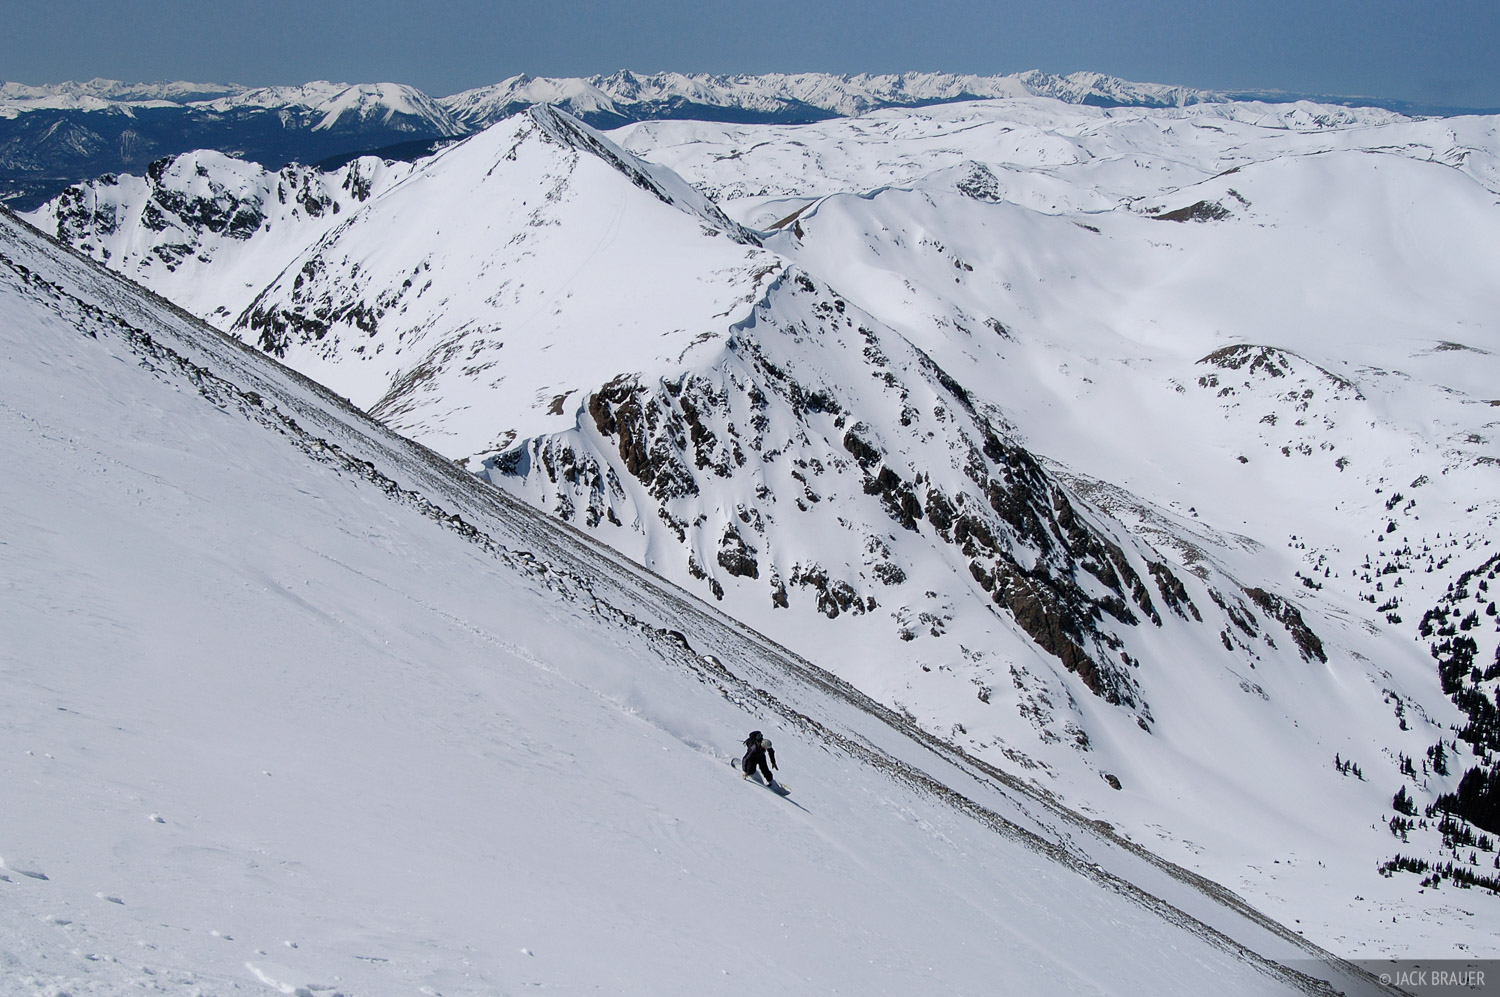 snowboarding, Torreys Northwest Couloir Descent, Colorado, photo